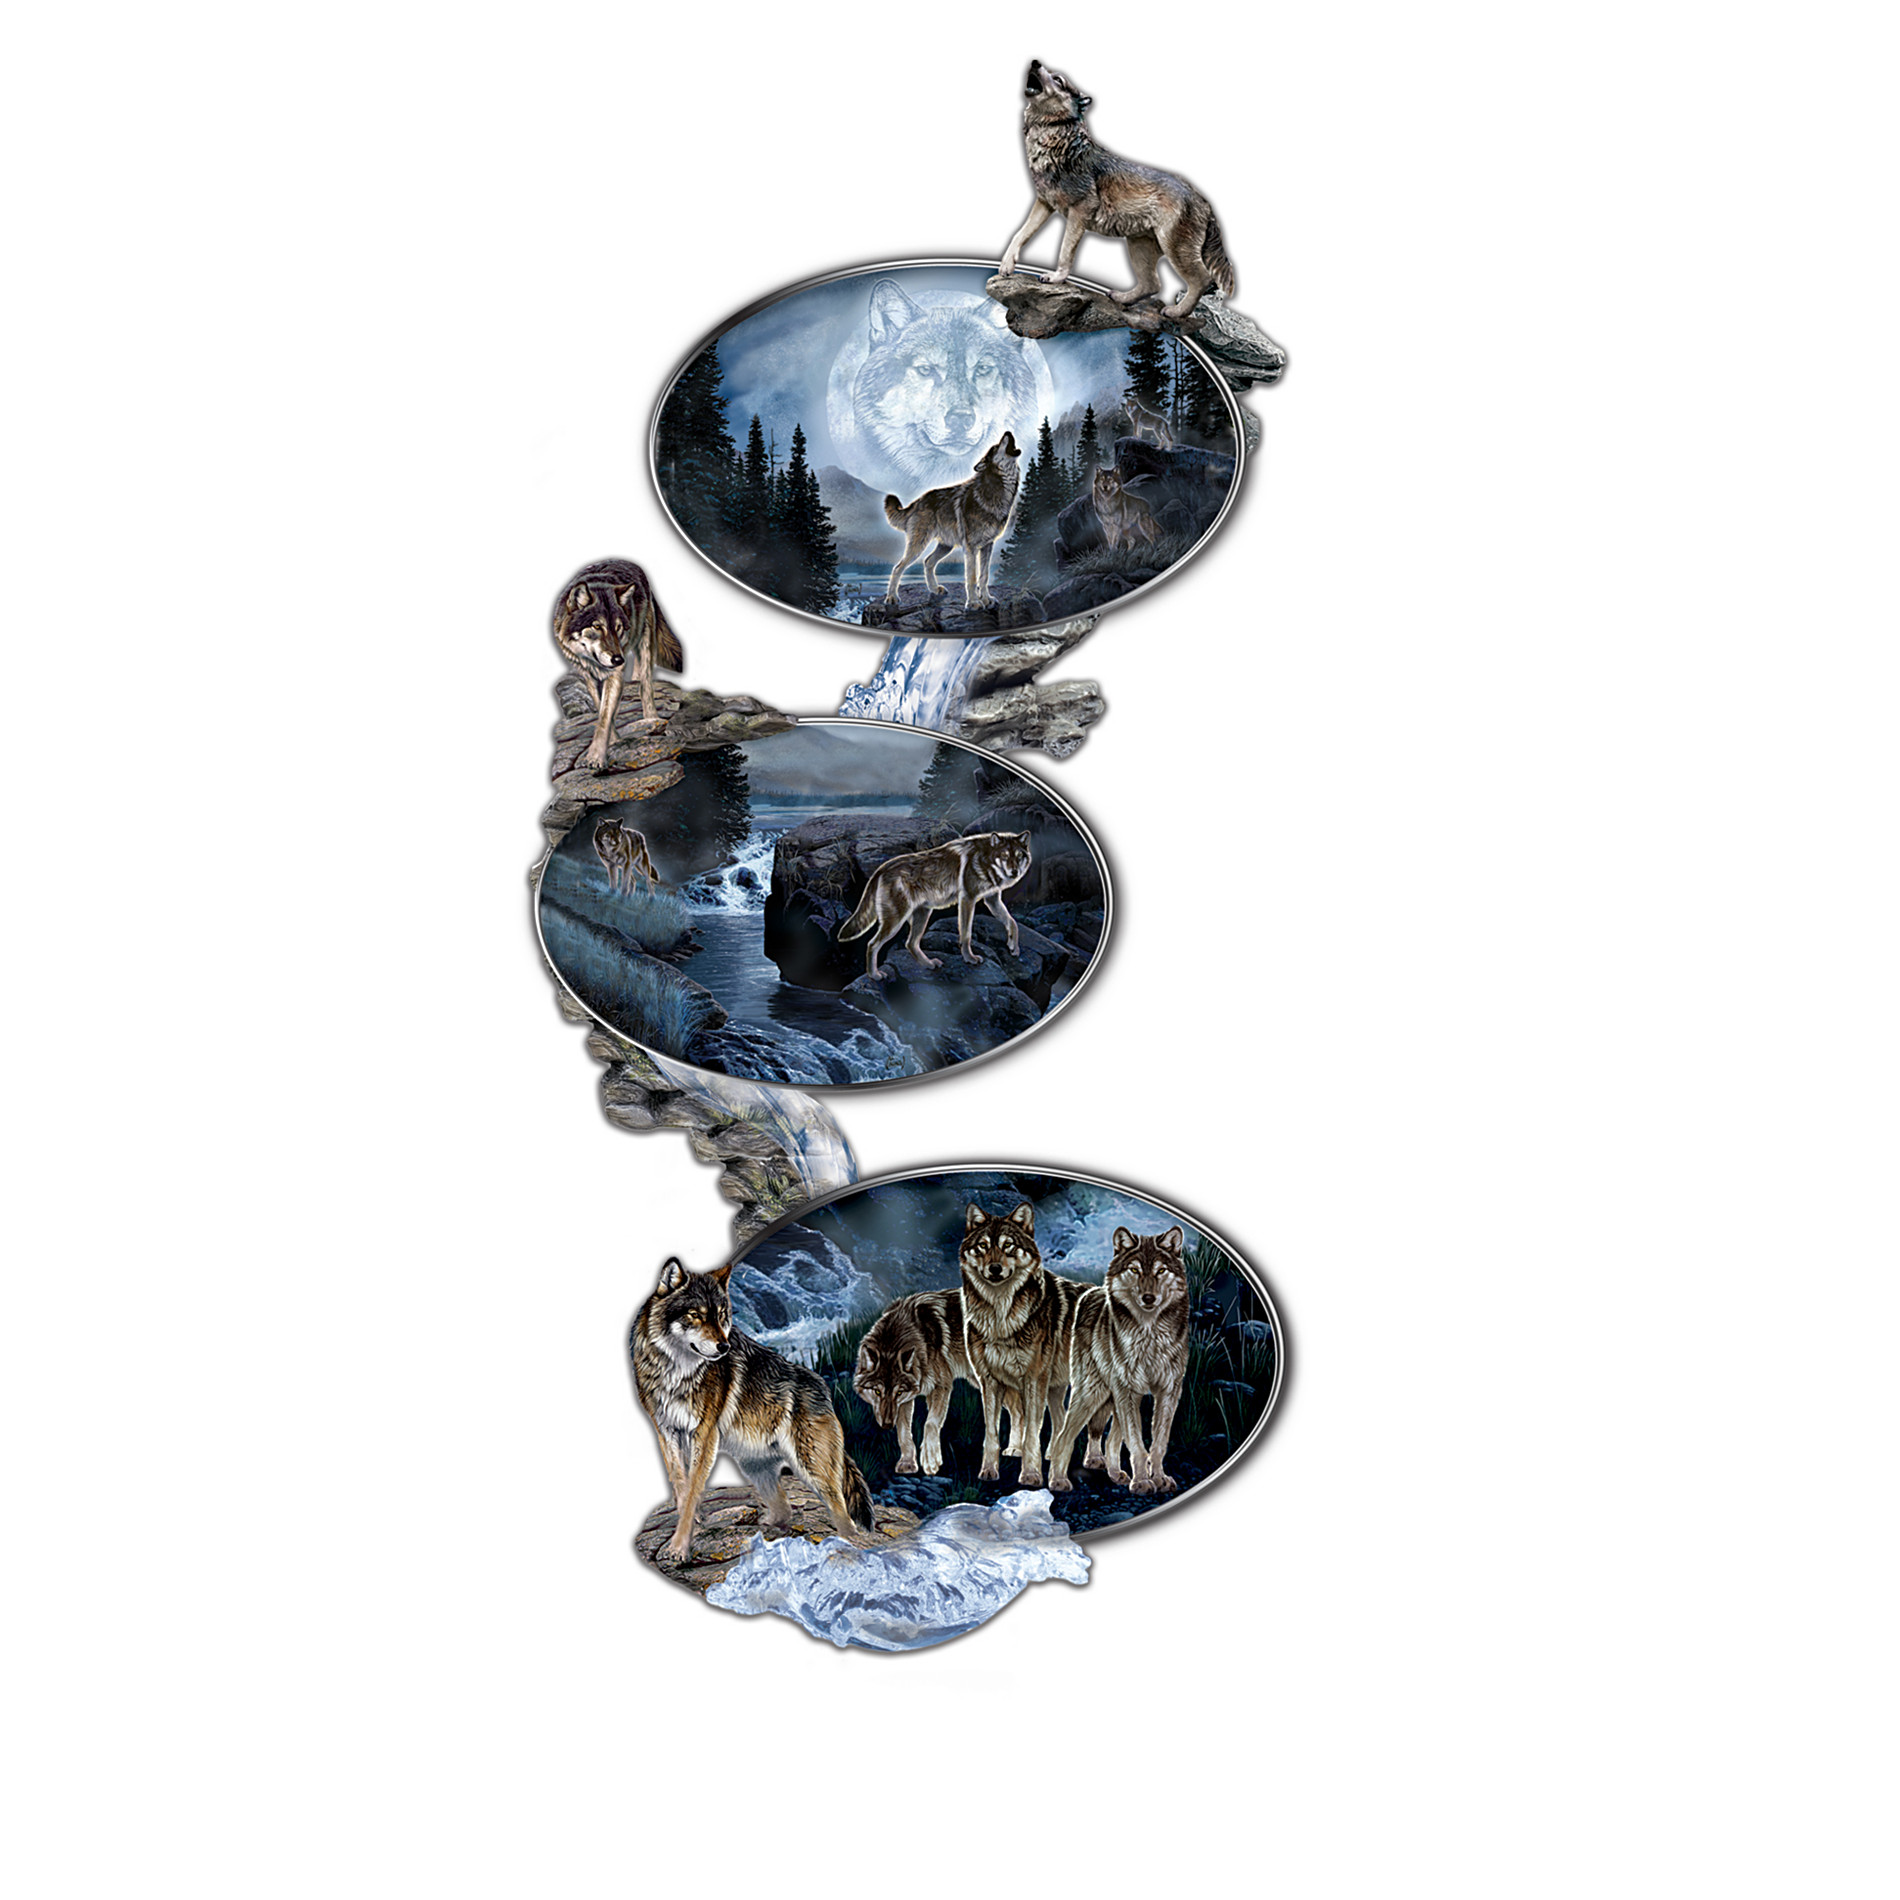 The Bradford Exchange Glow-In-The-Dark Wolf Art Heirloom Porcelain Plate Collection: Moonlight Journey at Sears.com